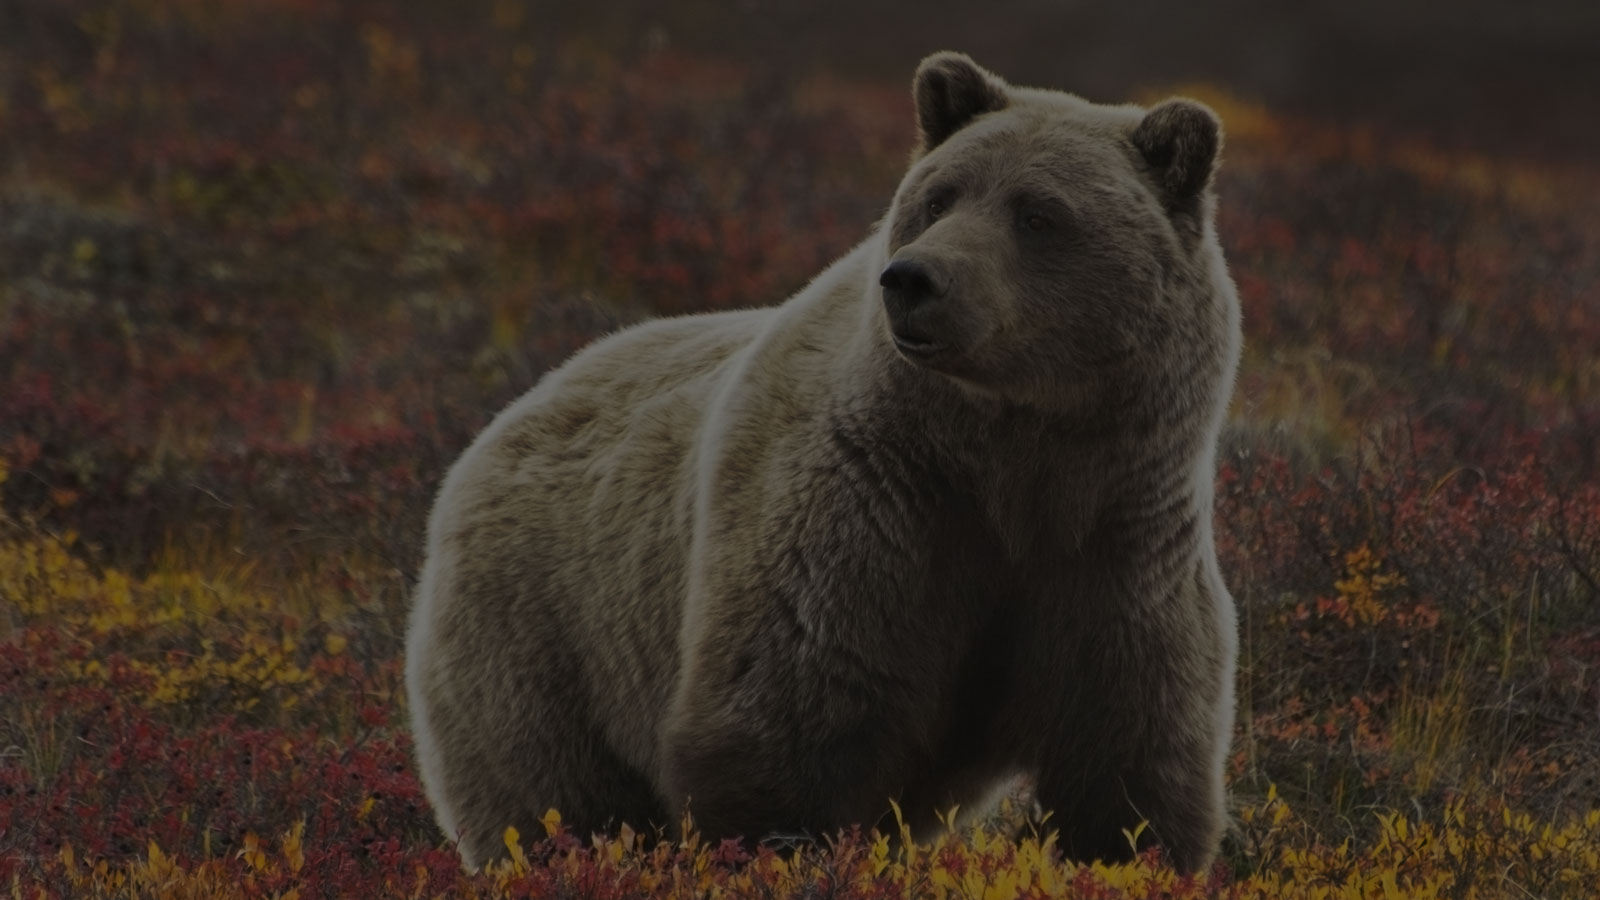 <h4>THE PAW AND FIN CONSERVATION ACT</h4><h5>We're working to pass the PAW and FIN Conservation Act, legislation that would undo the Trump administration's executive order weakening the Endangered Species Act.</h5><em>NancyS via Shutterstock.com</em>